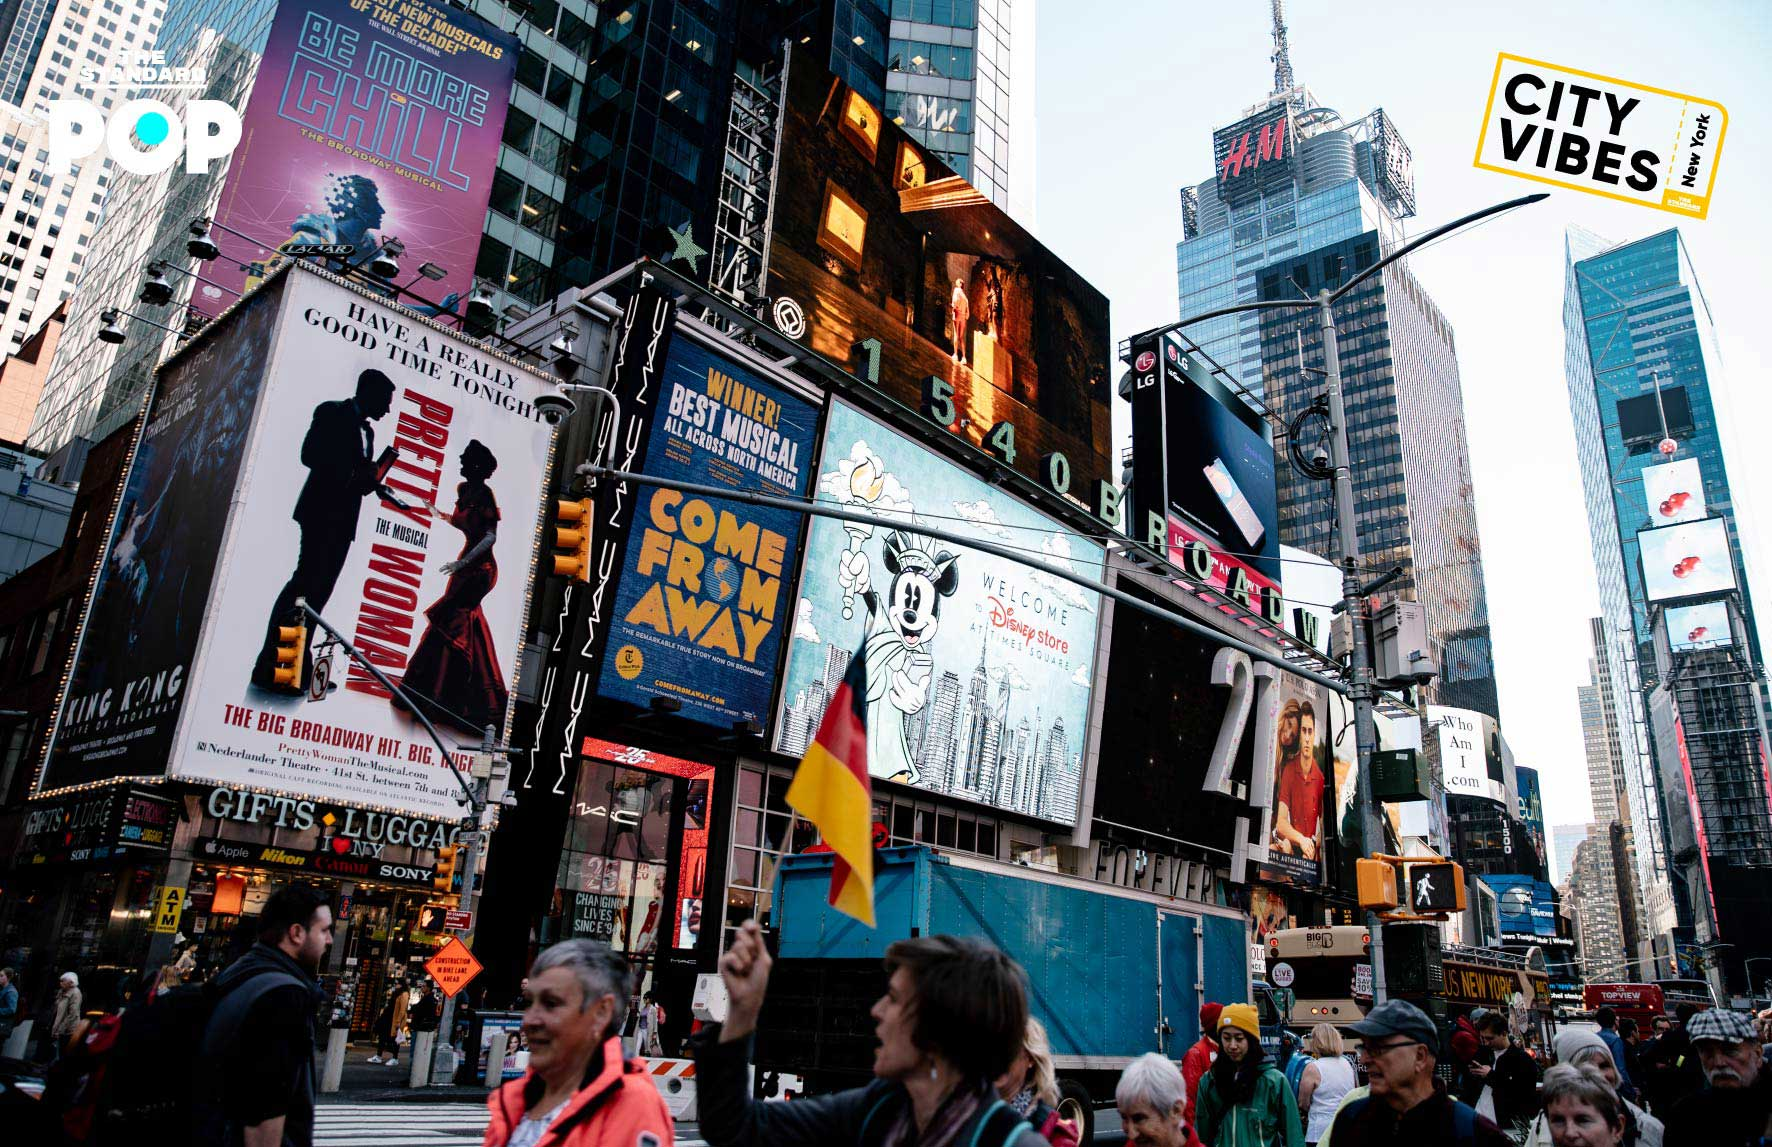 CITY VIBES New York Times Square